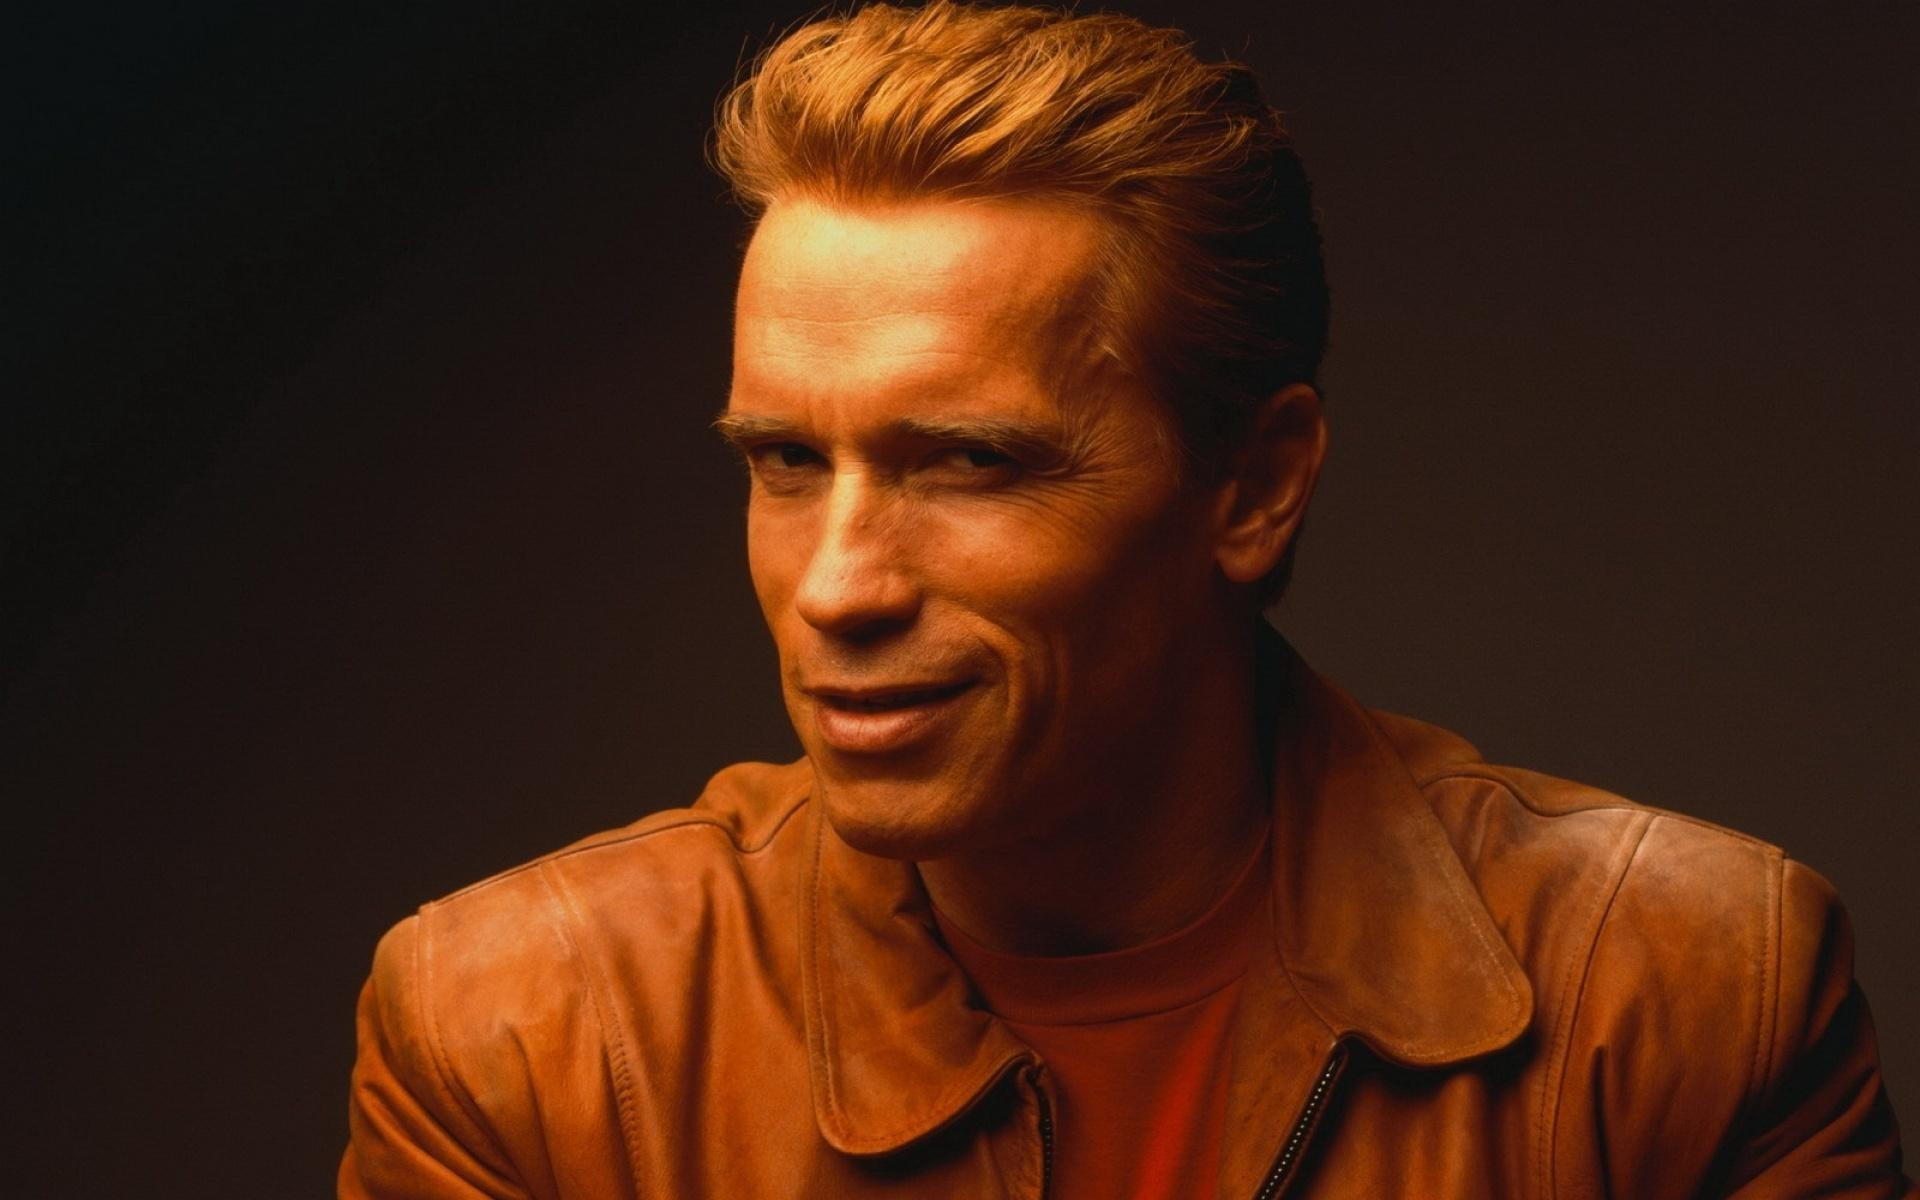 Cigar Wallpaper Iphone Arnold Schwarzenegger Wallpaper 75 Images